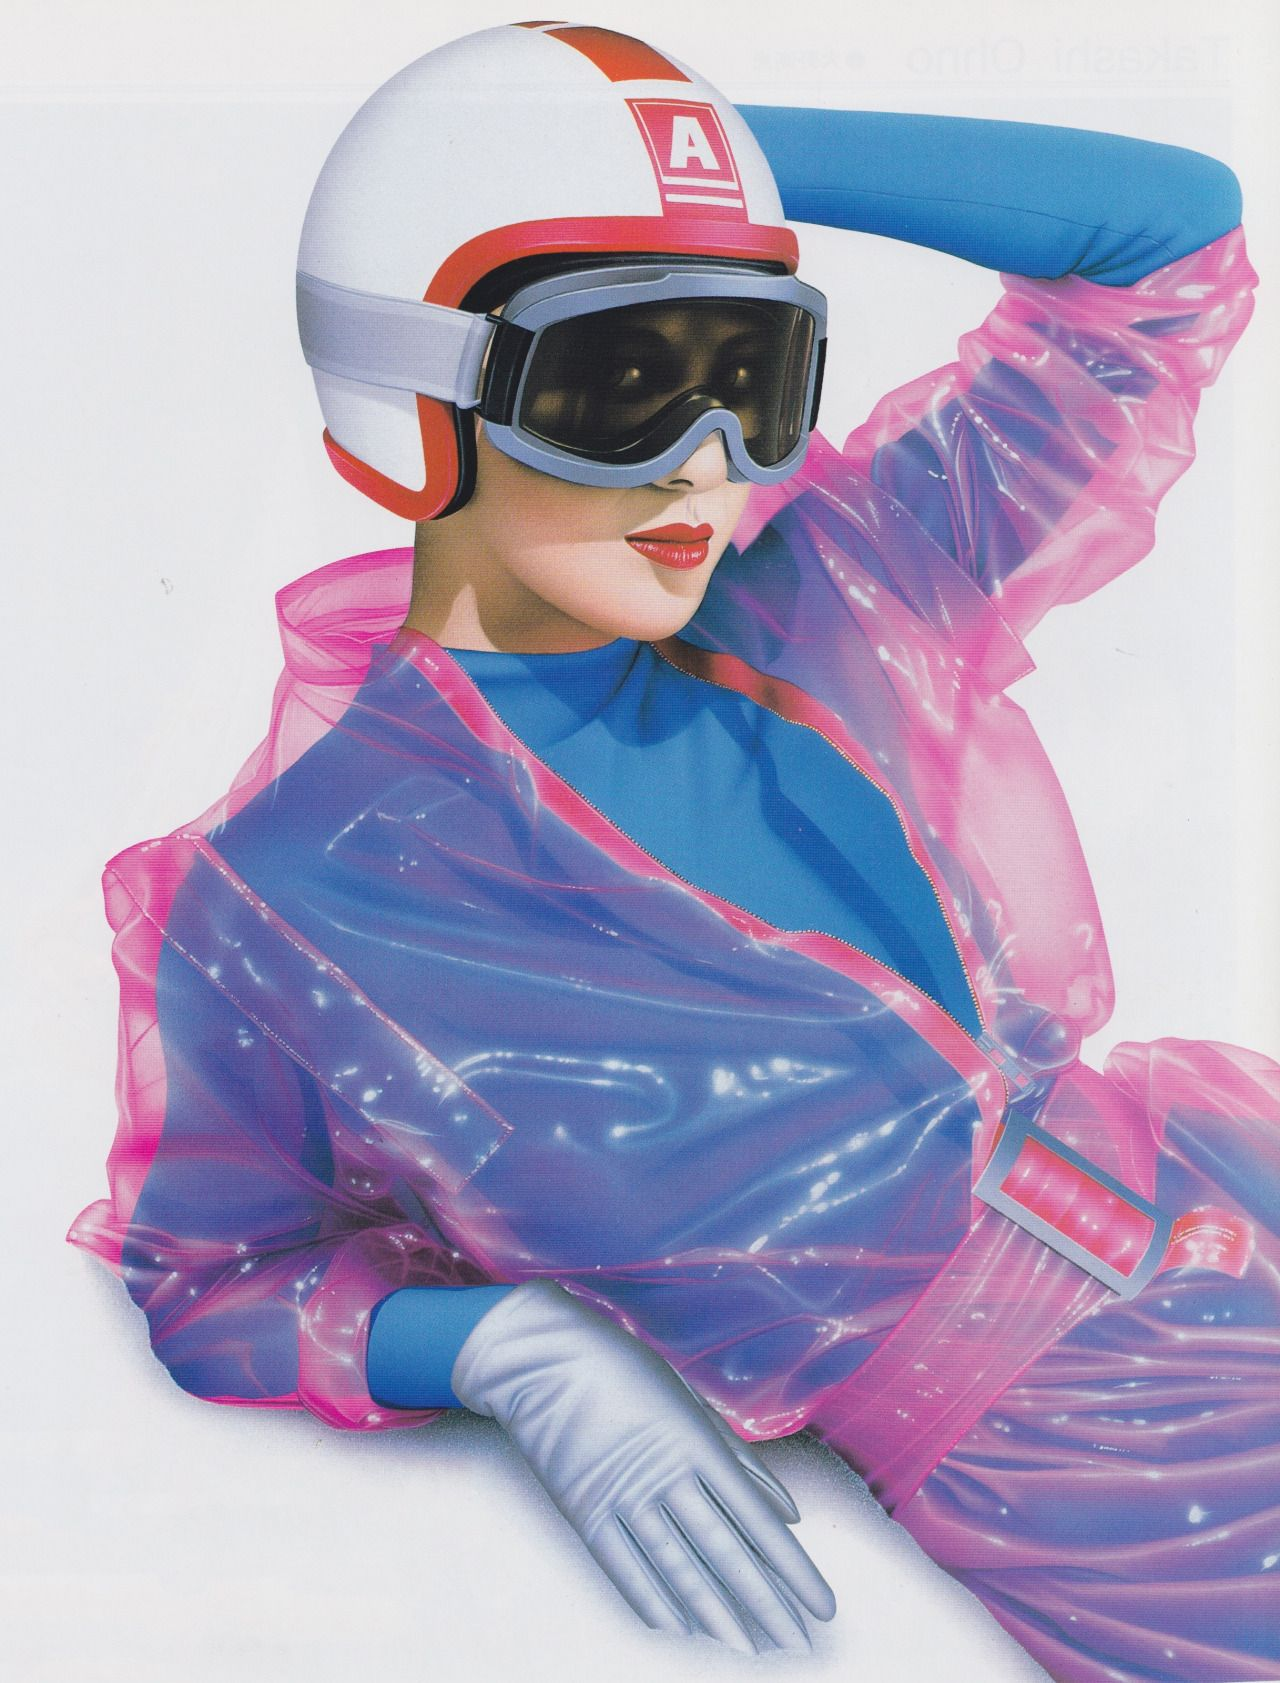 Palm & Laser Visual In 2019 Aesthetic Fashion Space